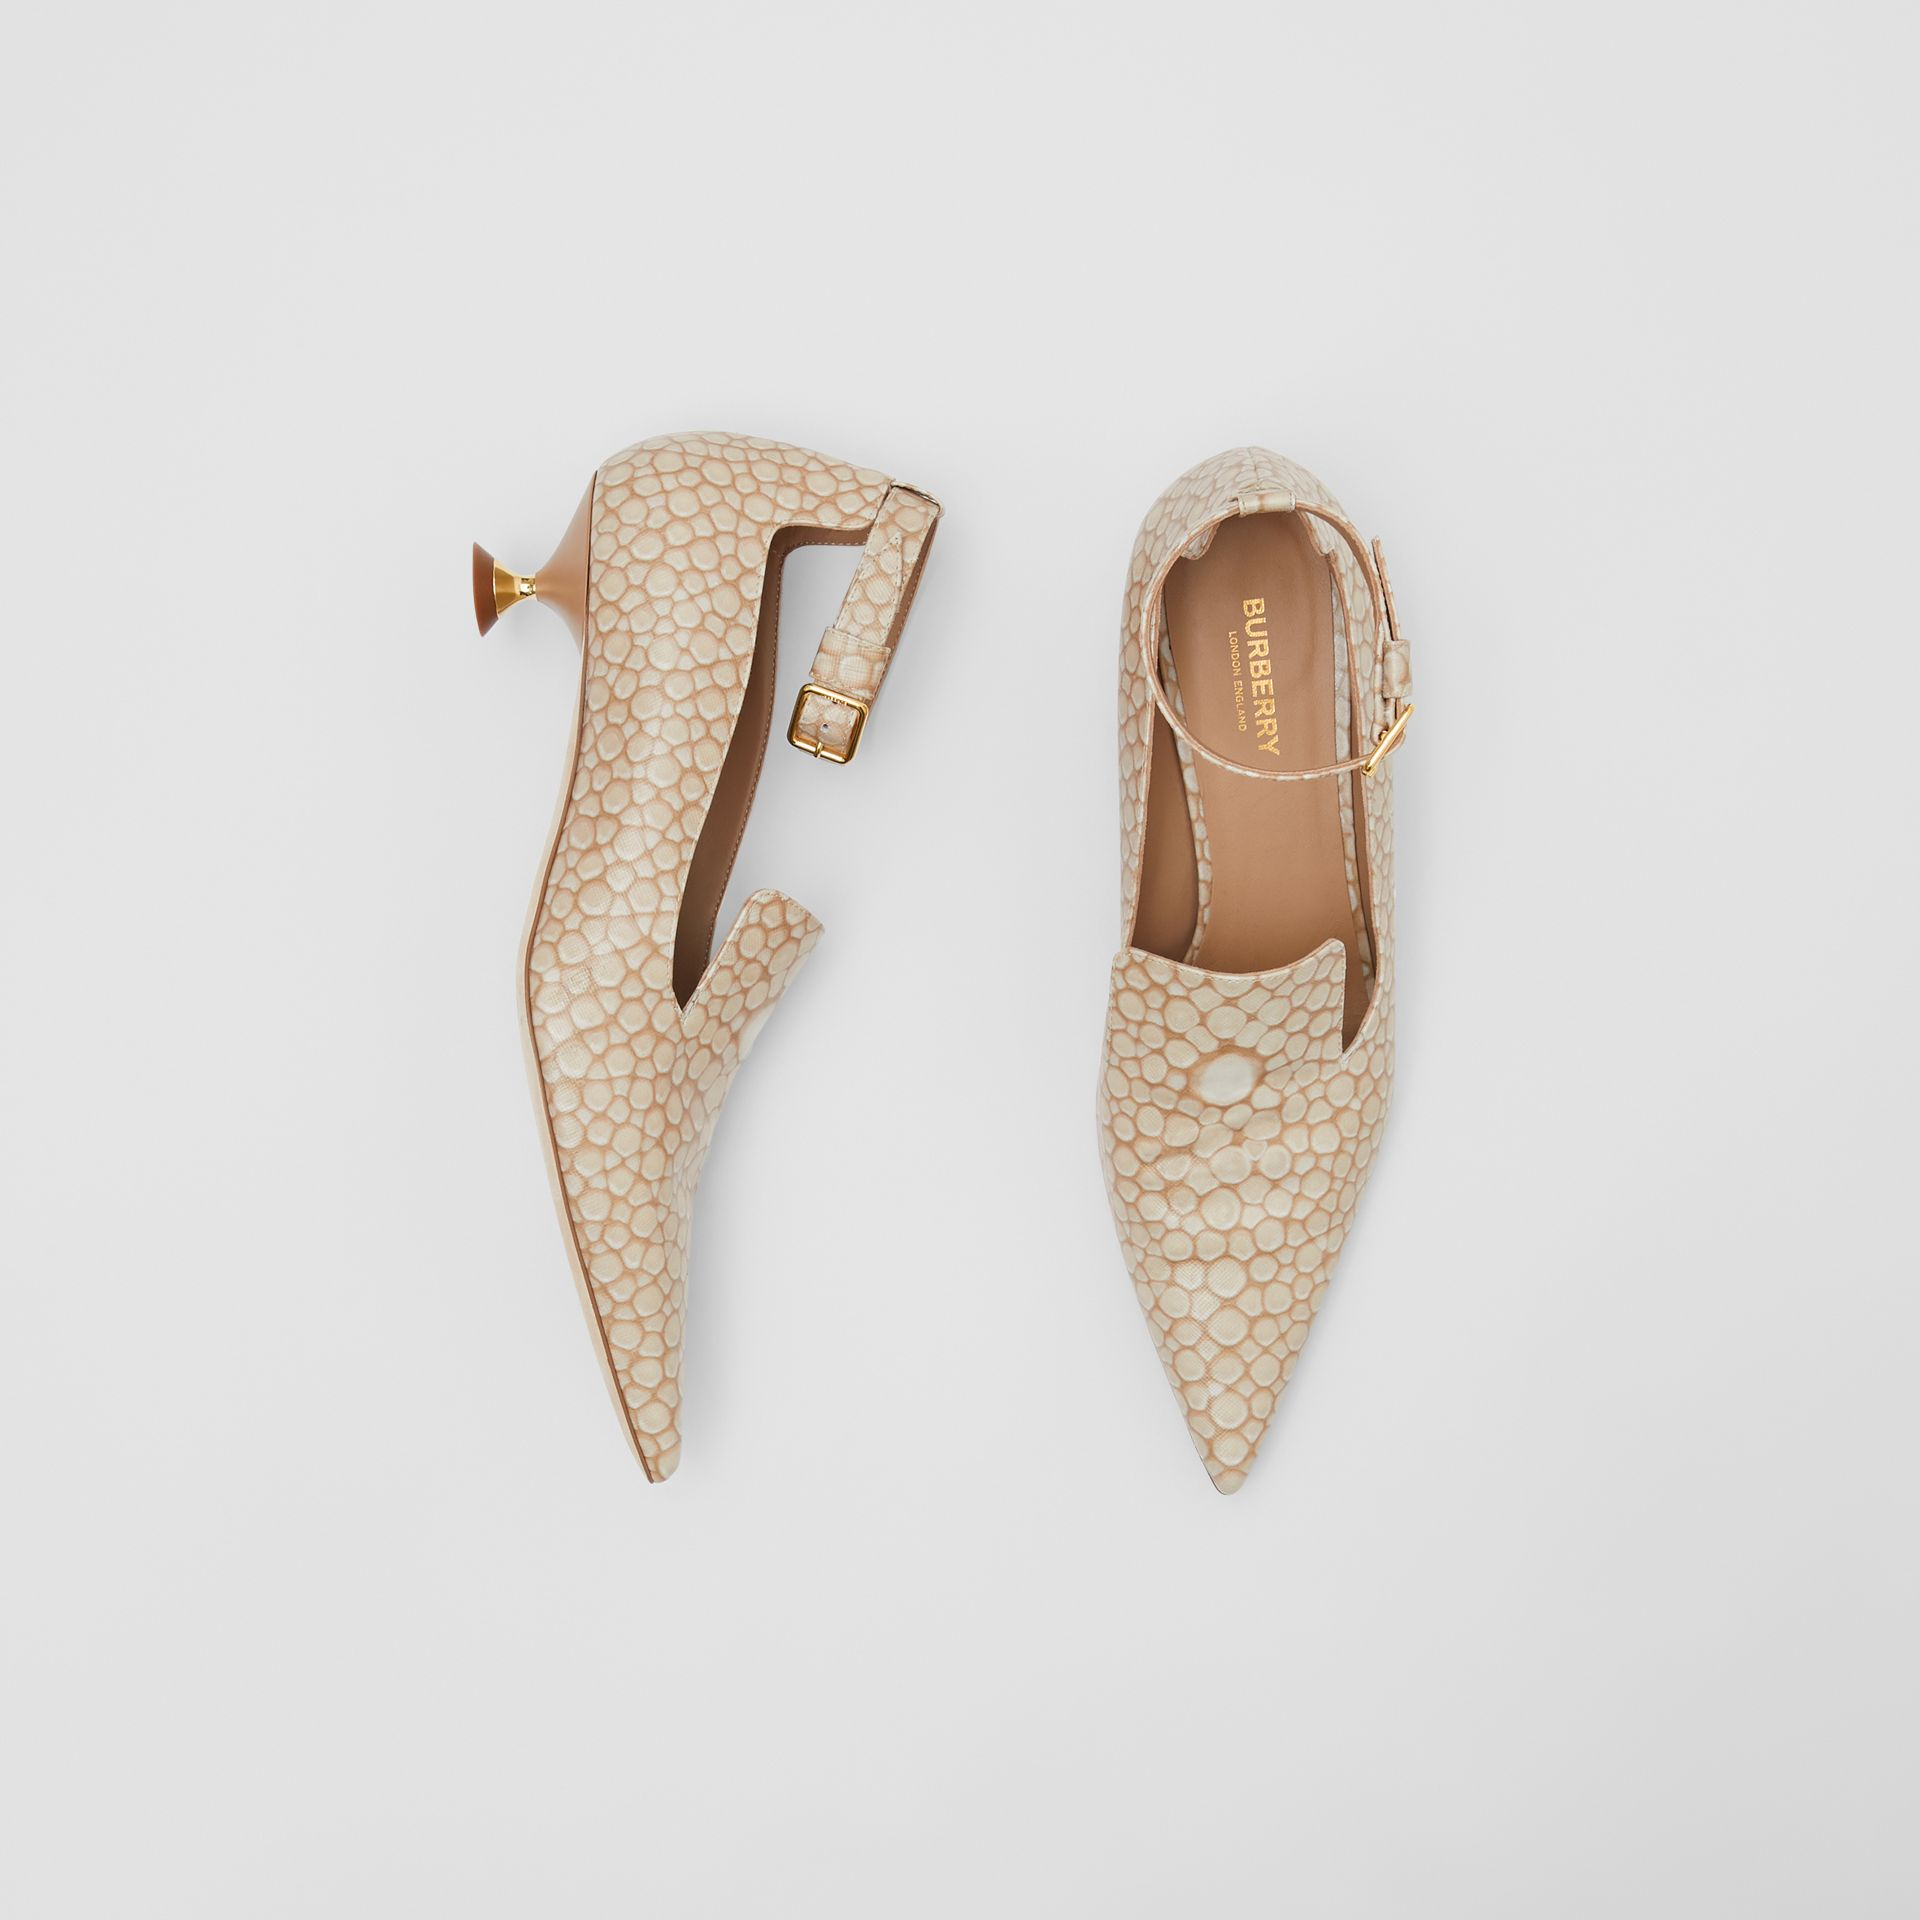 Stingray Print Leather Point-toe Kitten-heel Pumps in Nude - Women | Burberry - gallery image 0